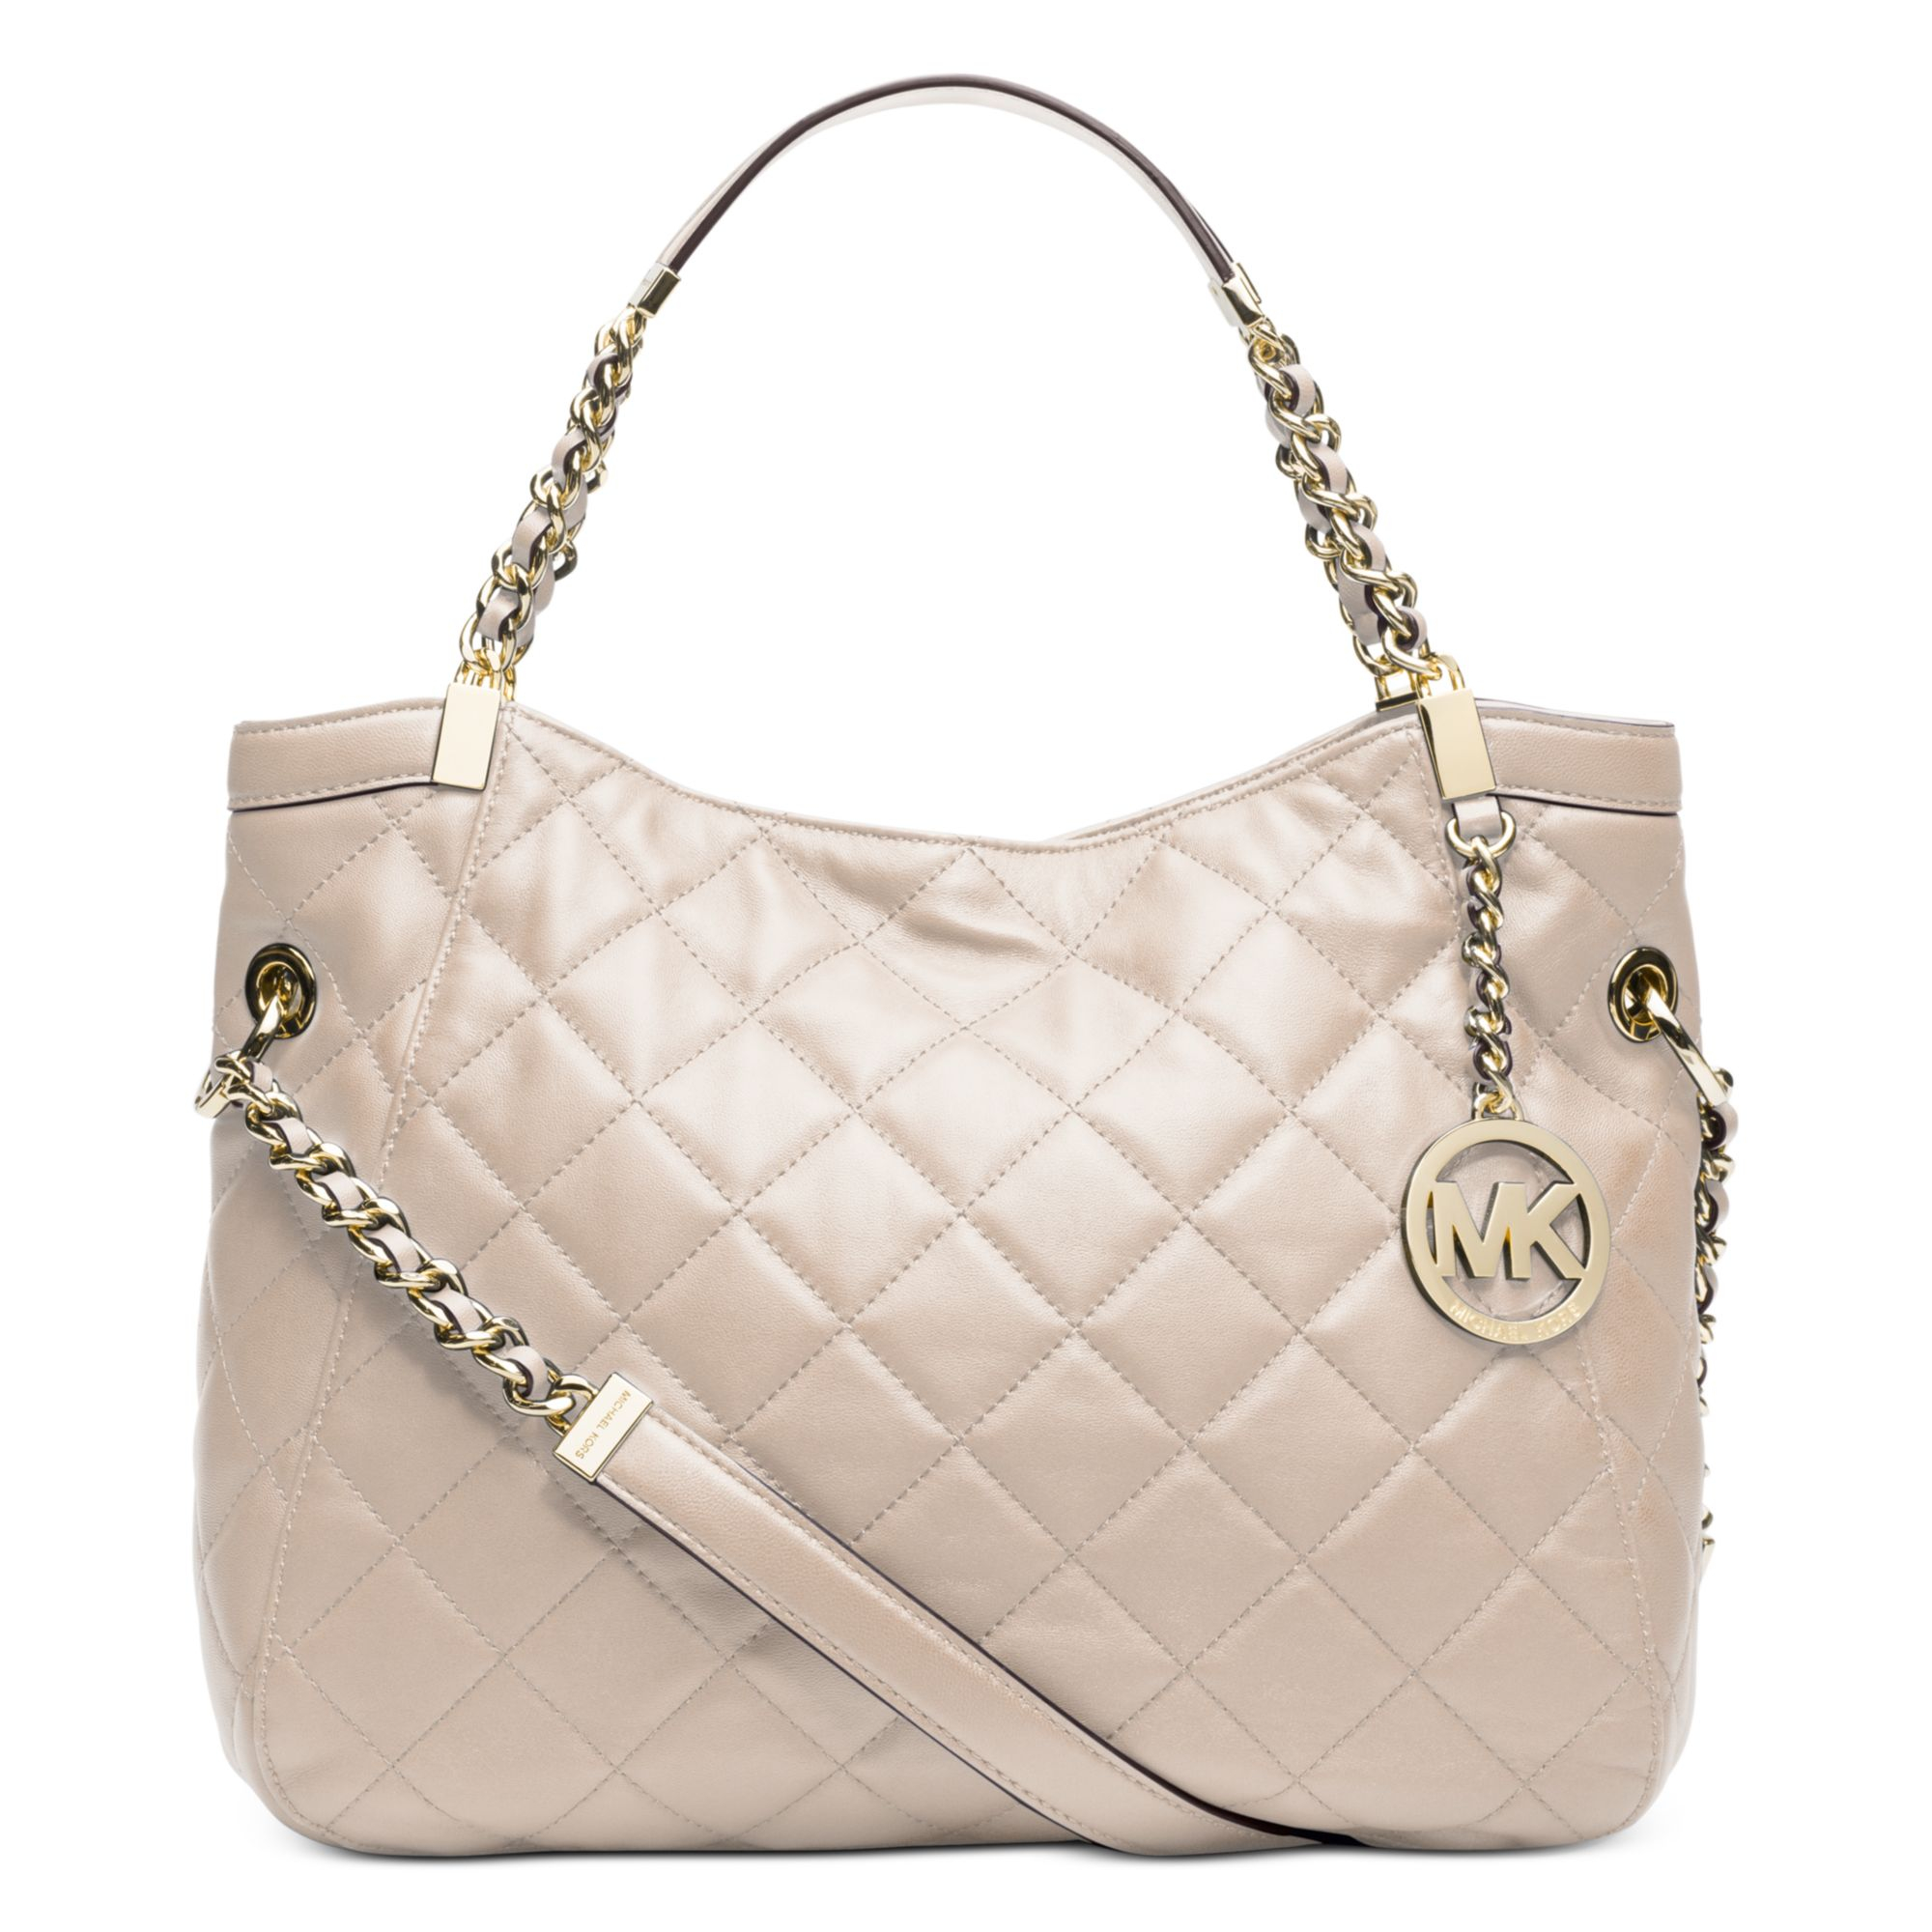 21d99dce2a53 Gallery. Previously sold at: Macy's · Women's Michael Kors Charm Women's Michael  Kors Quilted Bag ...